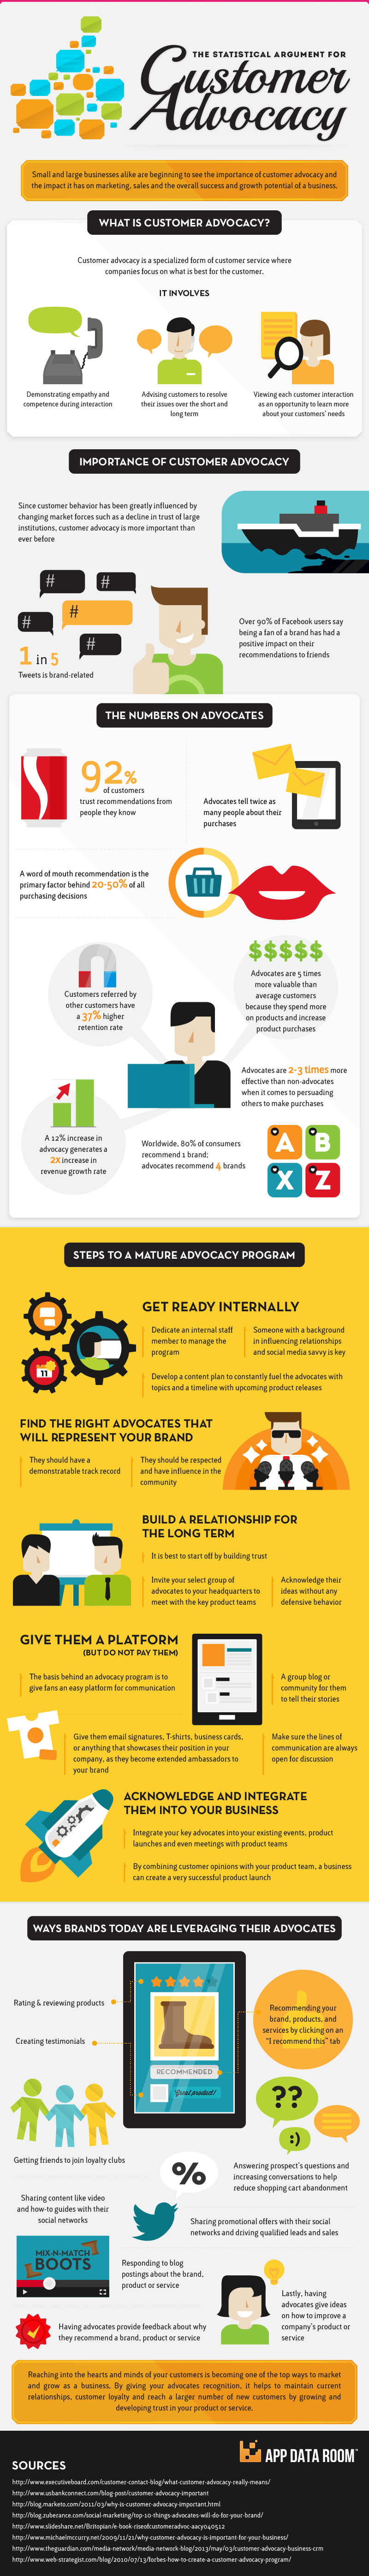 The Statistical Argument For Customer Advocacy